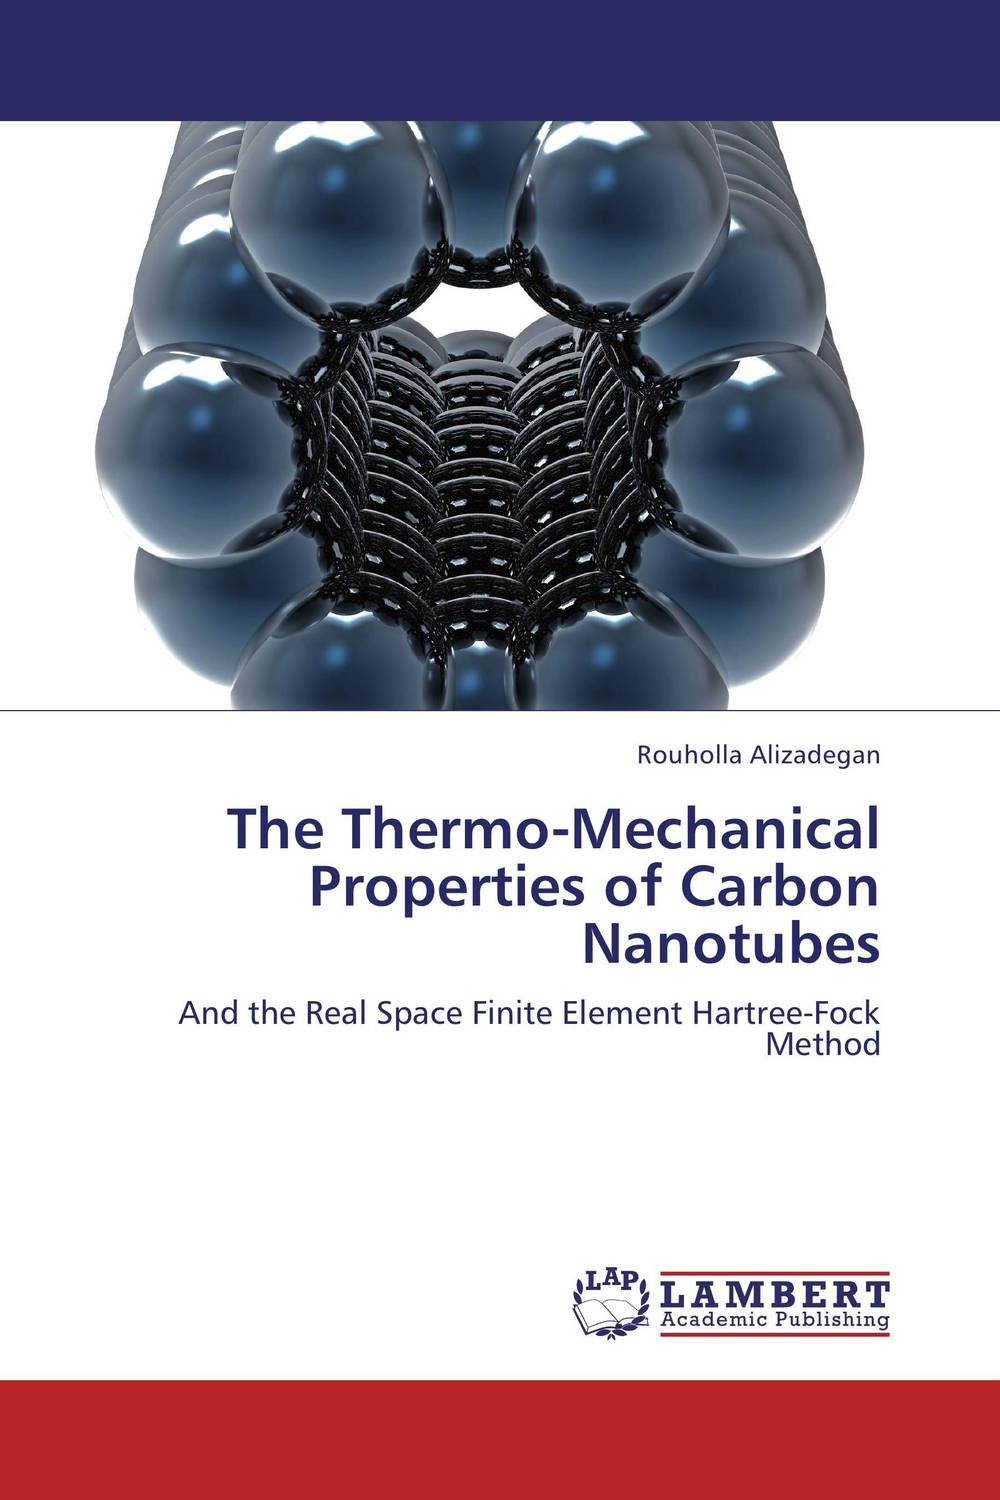 The Thermo-Mechanical Properties of Carbon Nanotubes thermo operated water valves can be used in food processing equipments biomass boilers and hydraulic systems